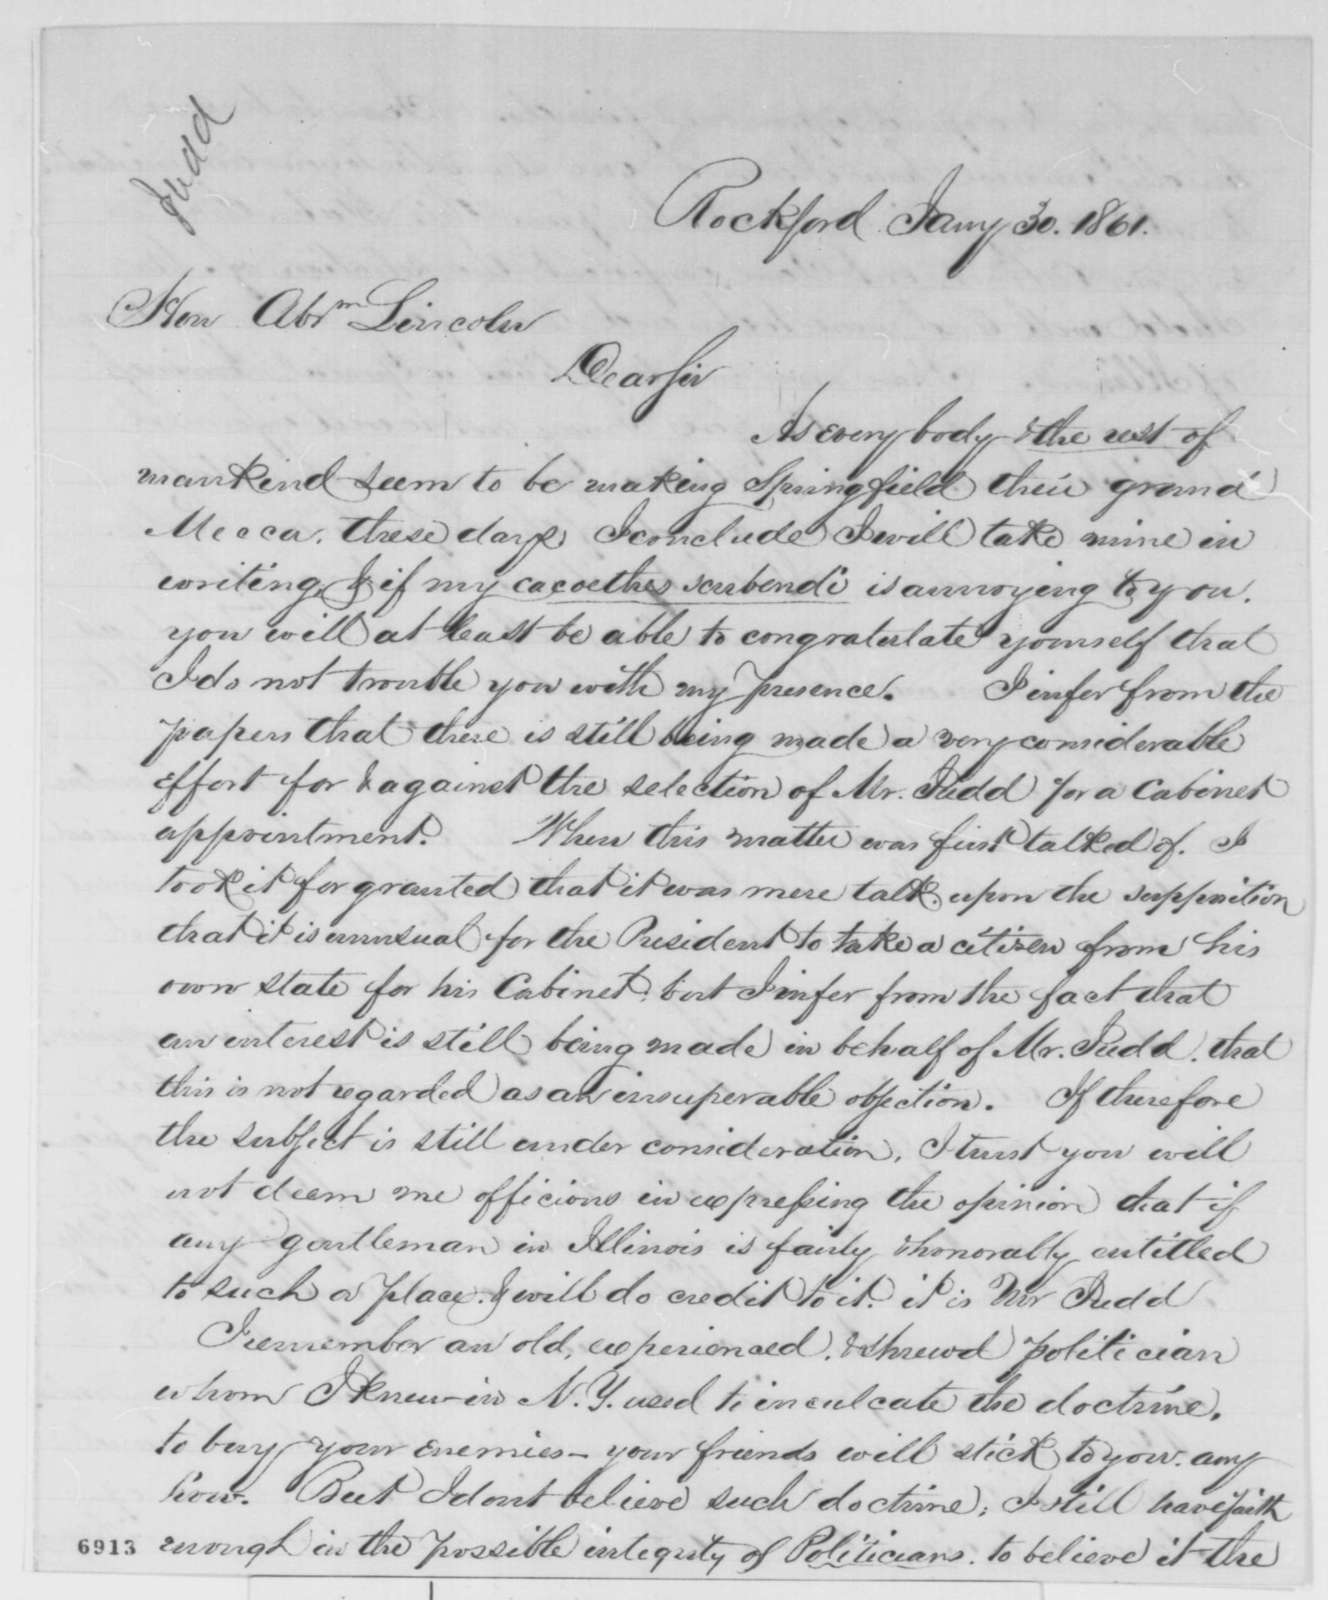 Jason Marsh to Abraham Lincoln, Wednesday, January 30, 1861  (Recommends Judd for cabinet)